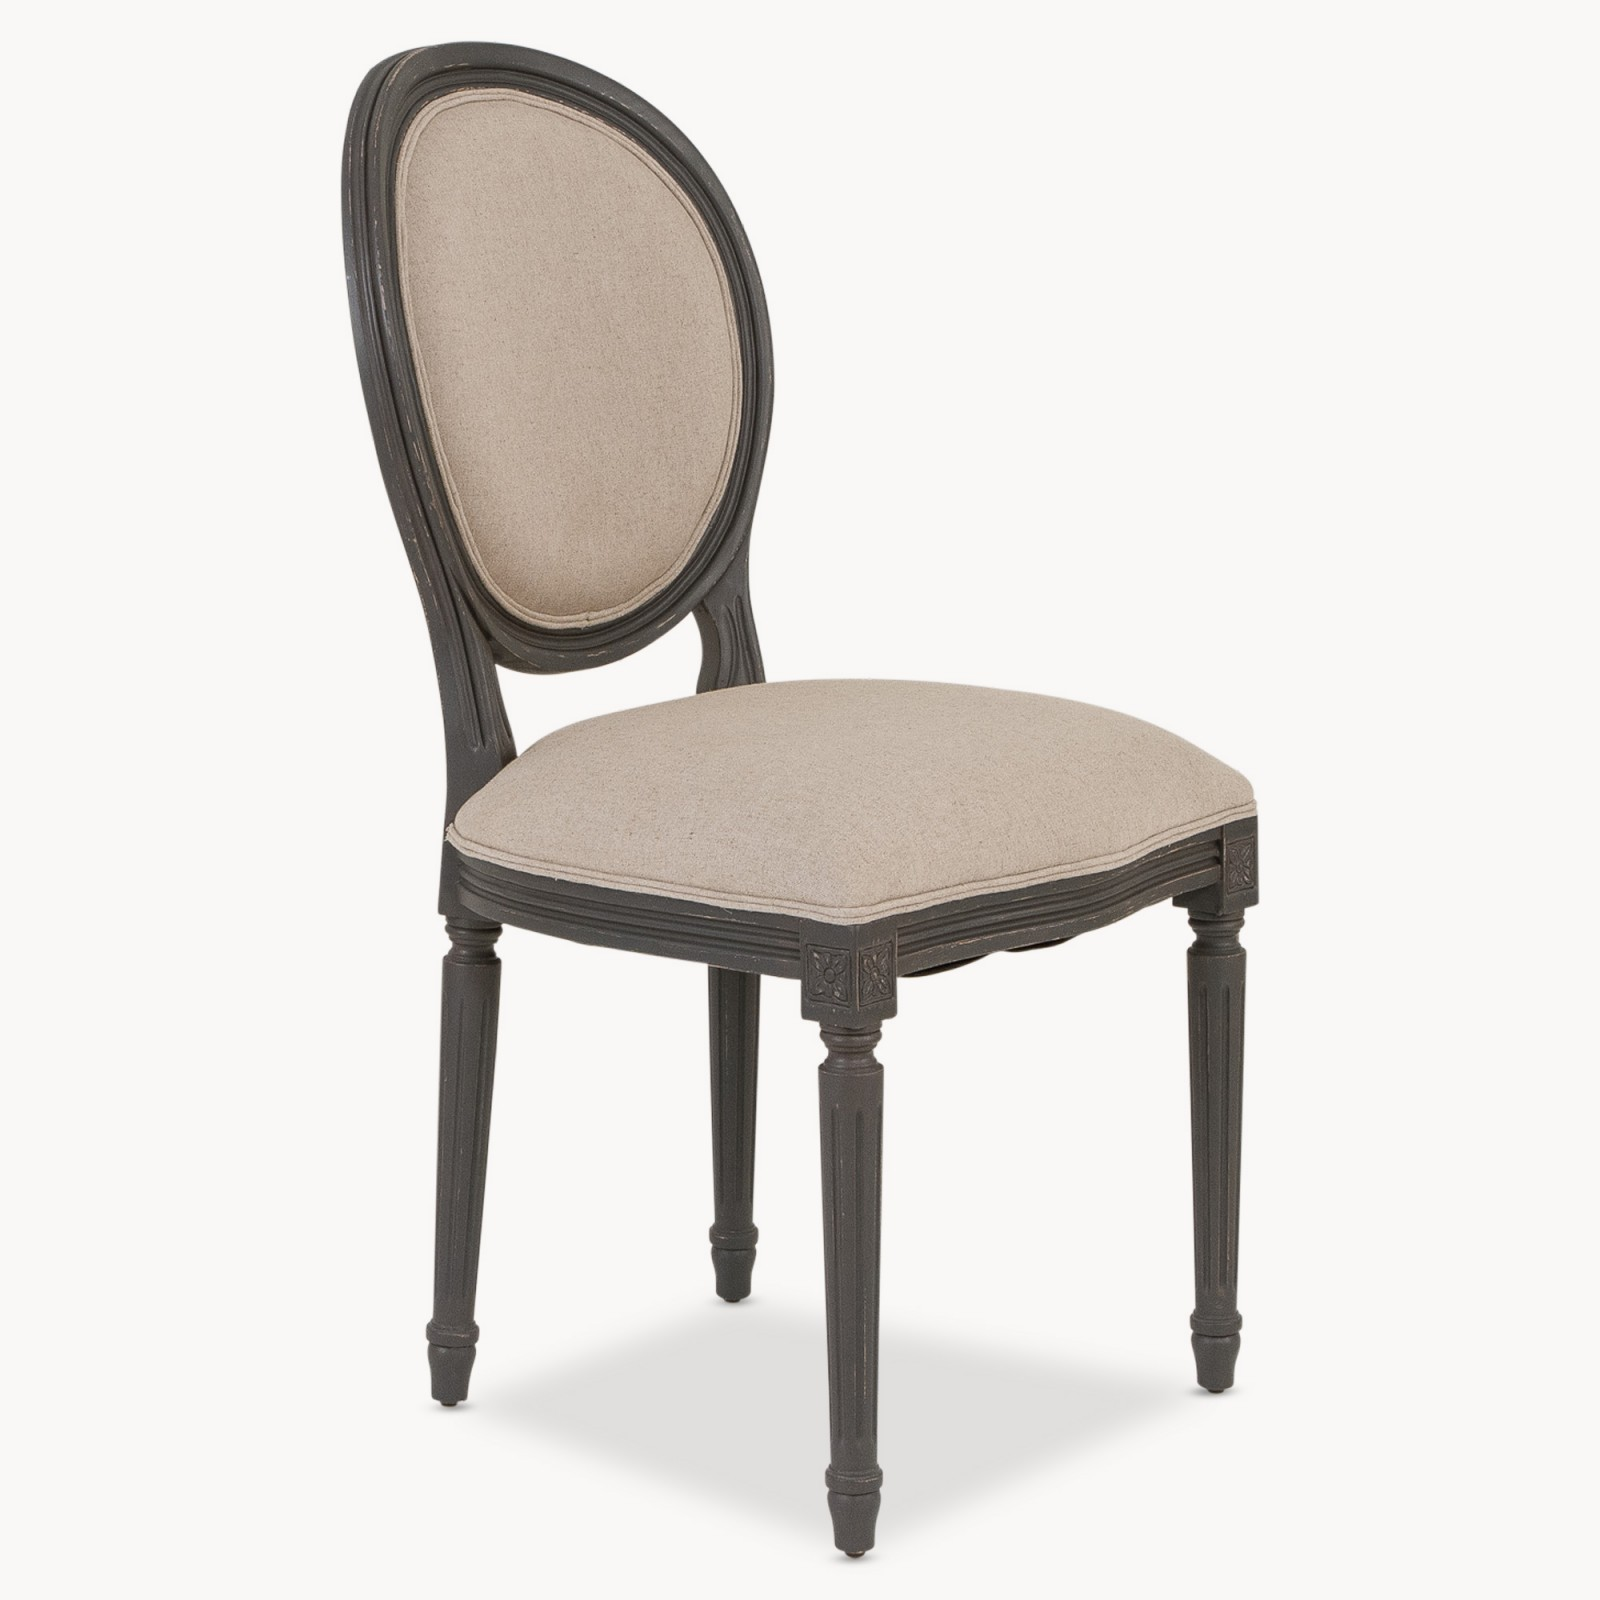 Furniture Chairs Dining: Rubber Wood Dining Chair Furniture